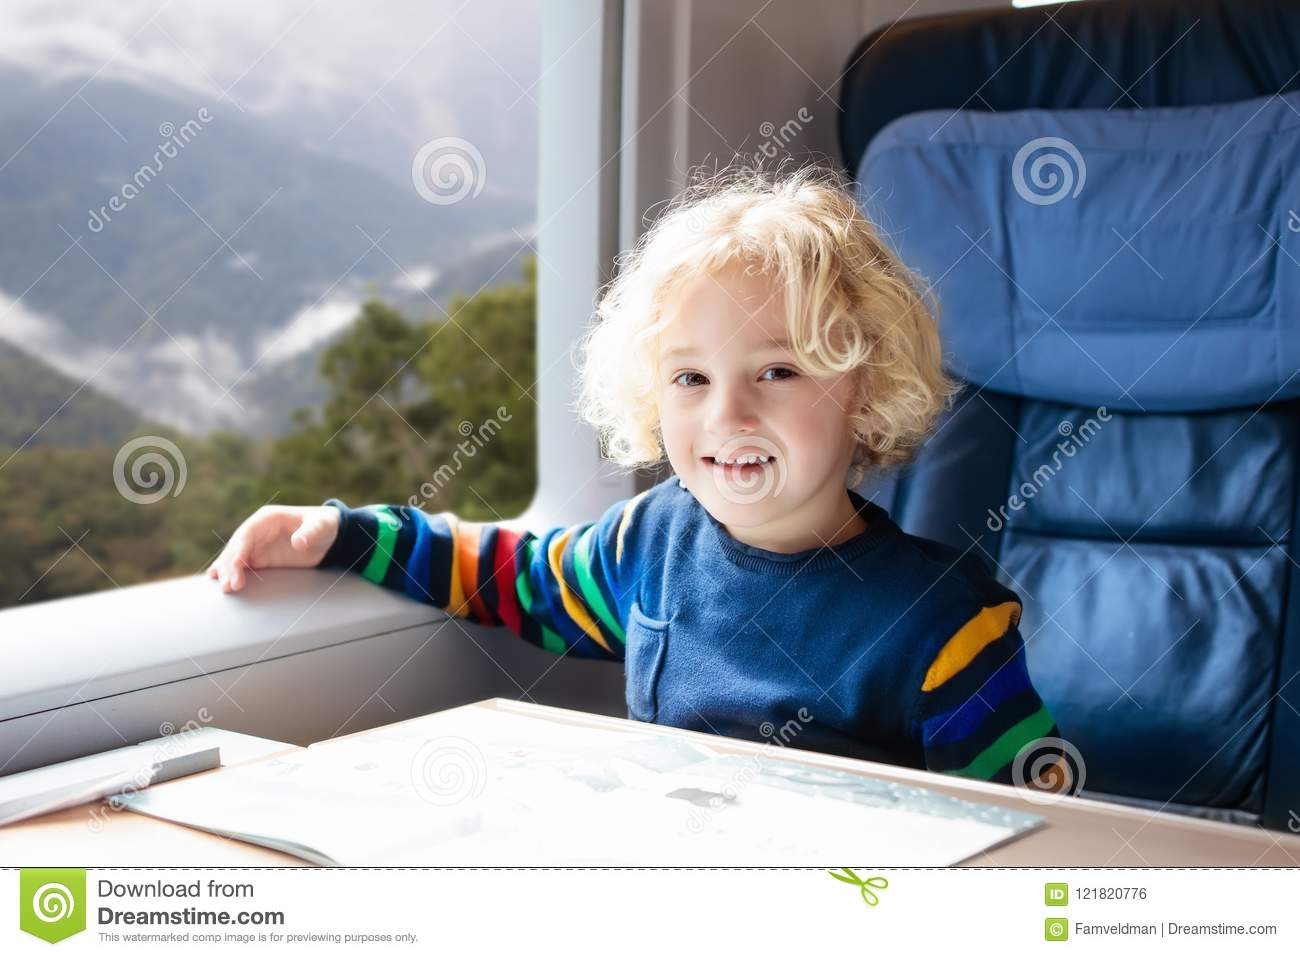 Kids Travel By Train Railway Trip With Child Stock Photo Image Of Book Toddler 121820776